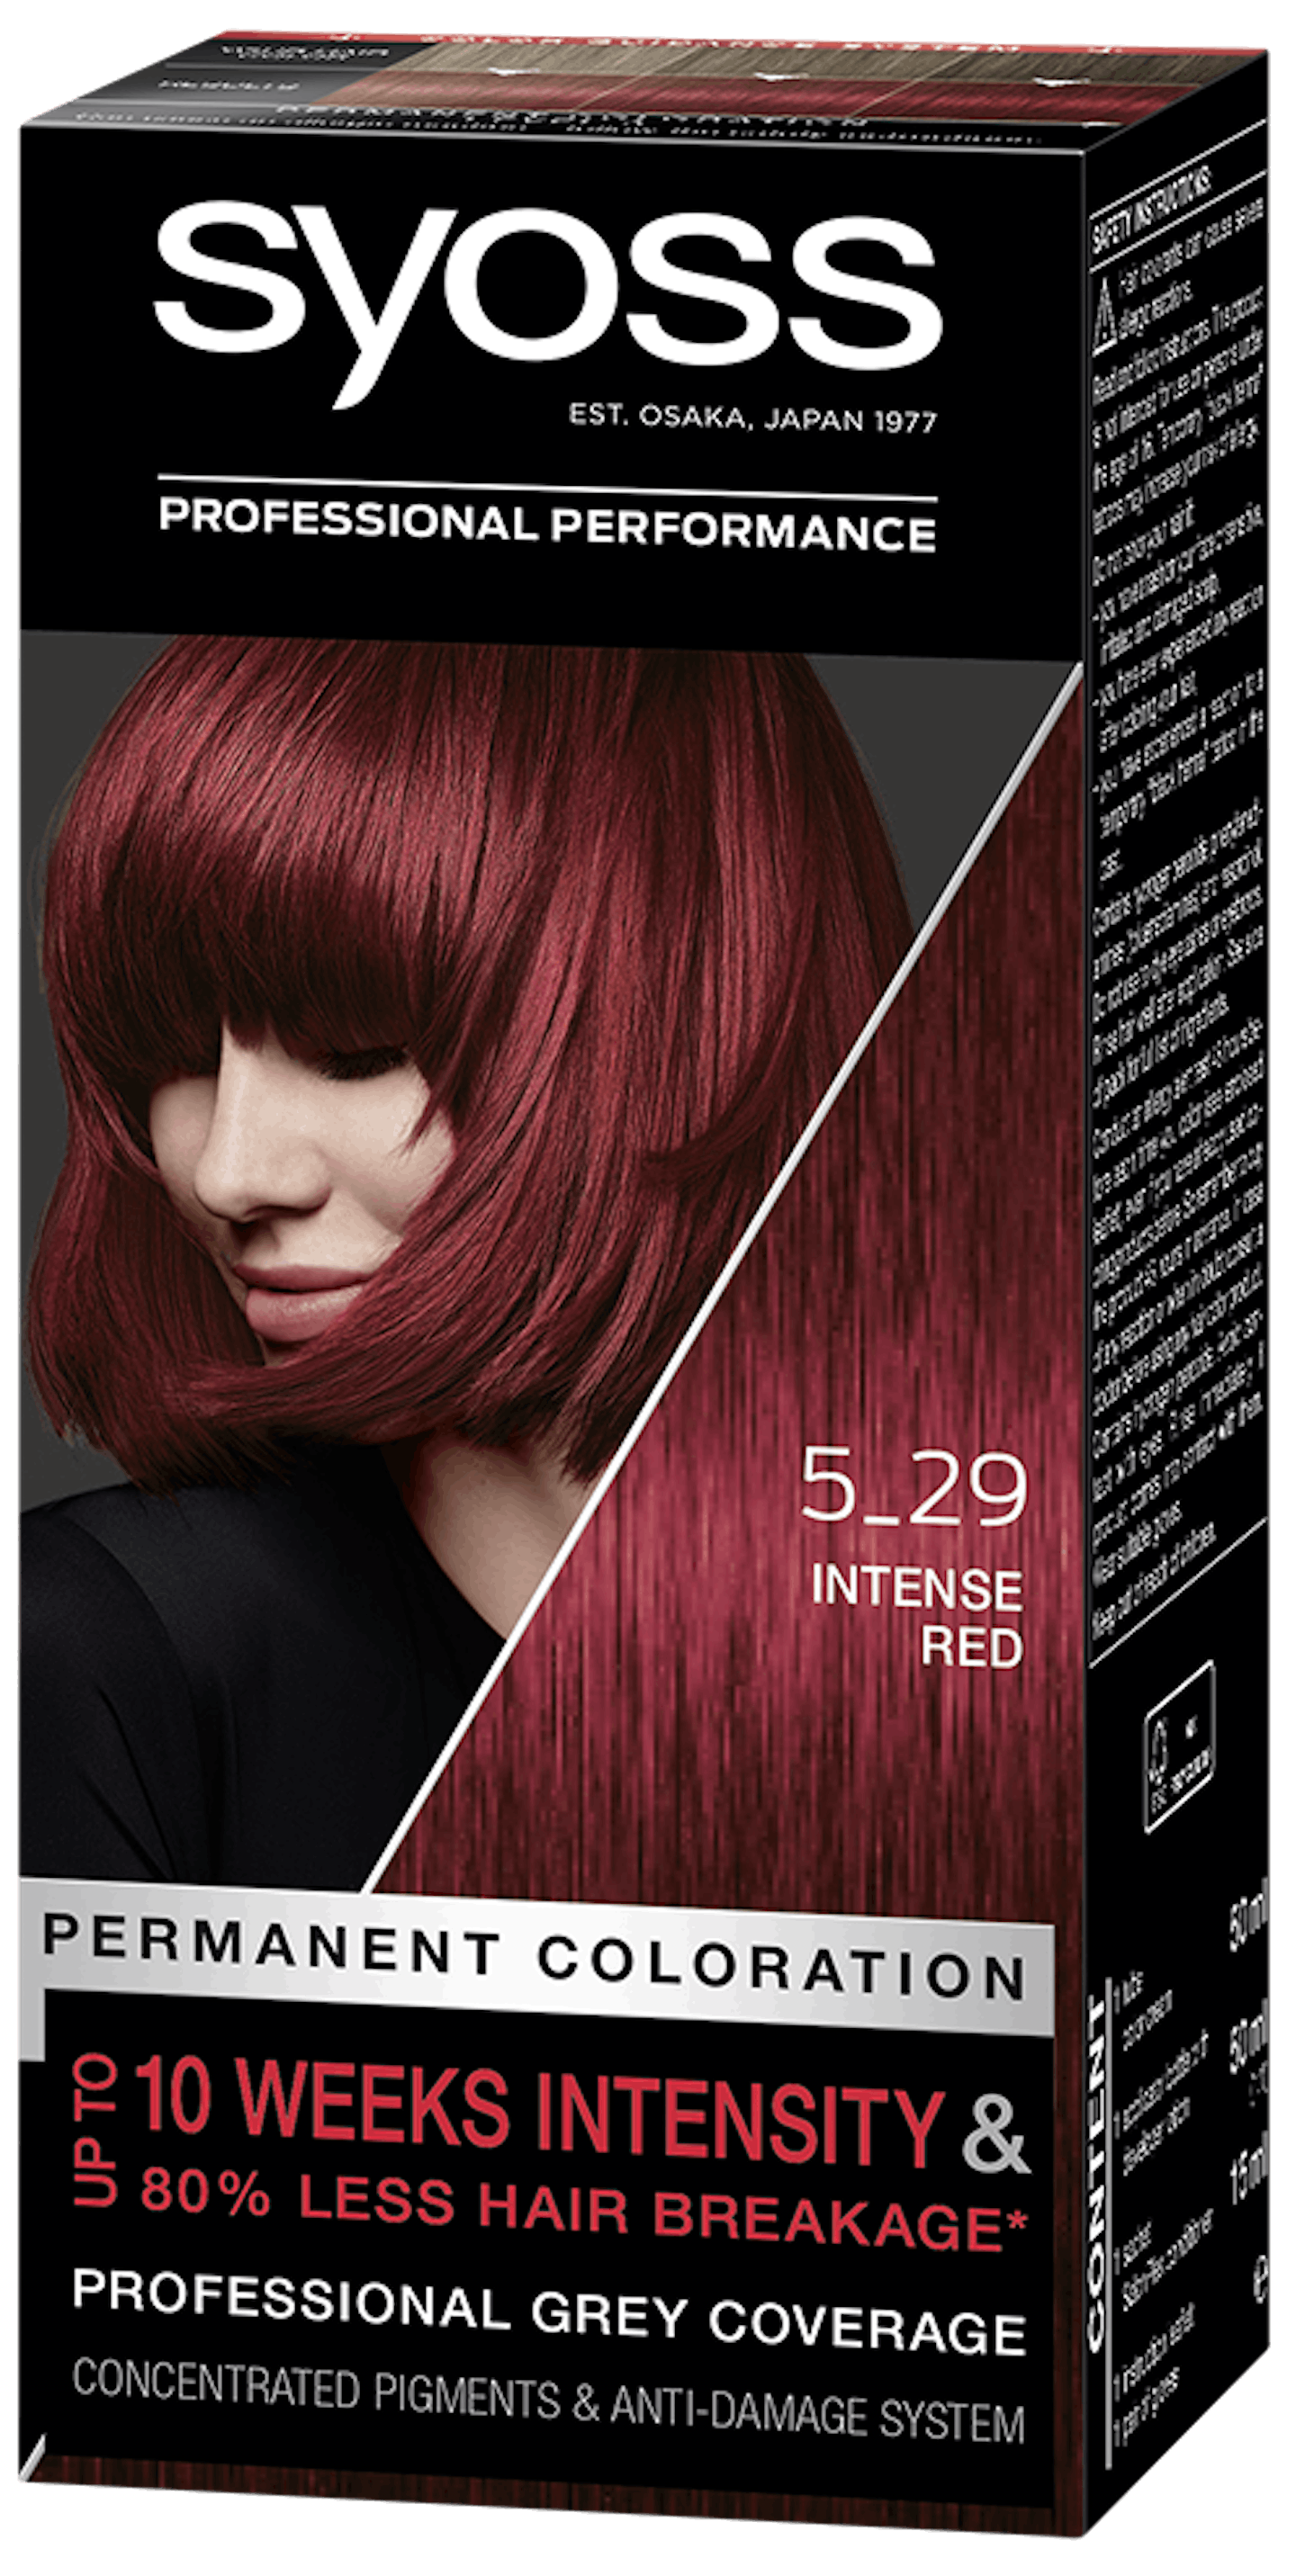 Syoss Permanent Coloration 5_29 Intense Red